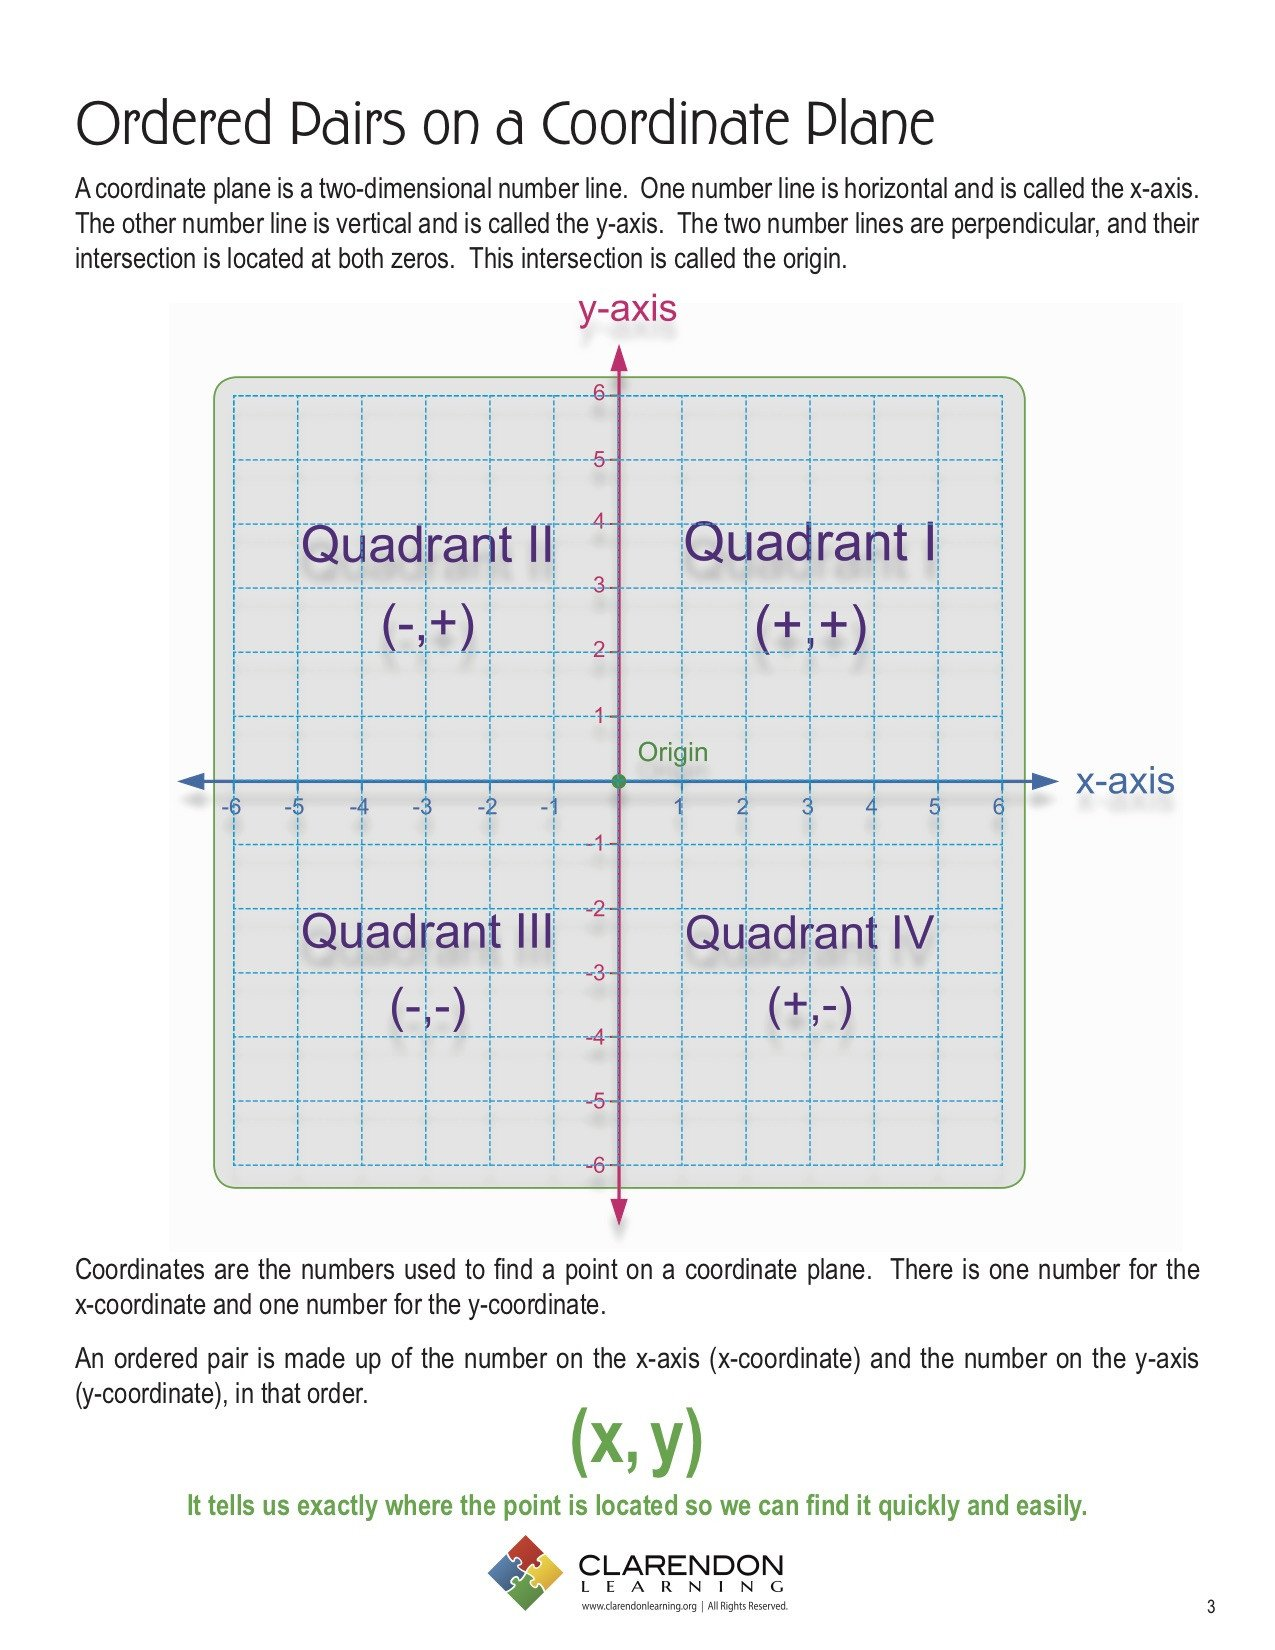 Ordered Pairs on a Coordinate Plane Worksheet